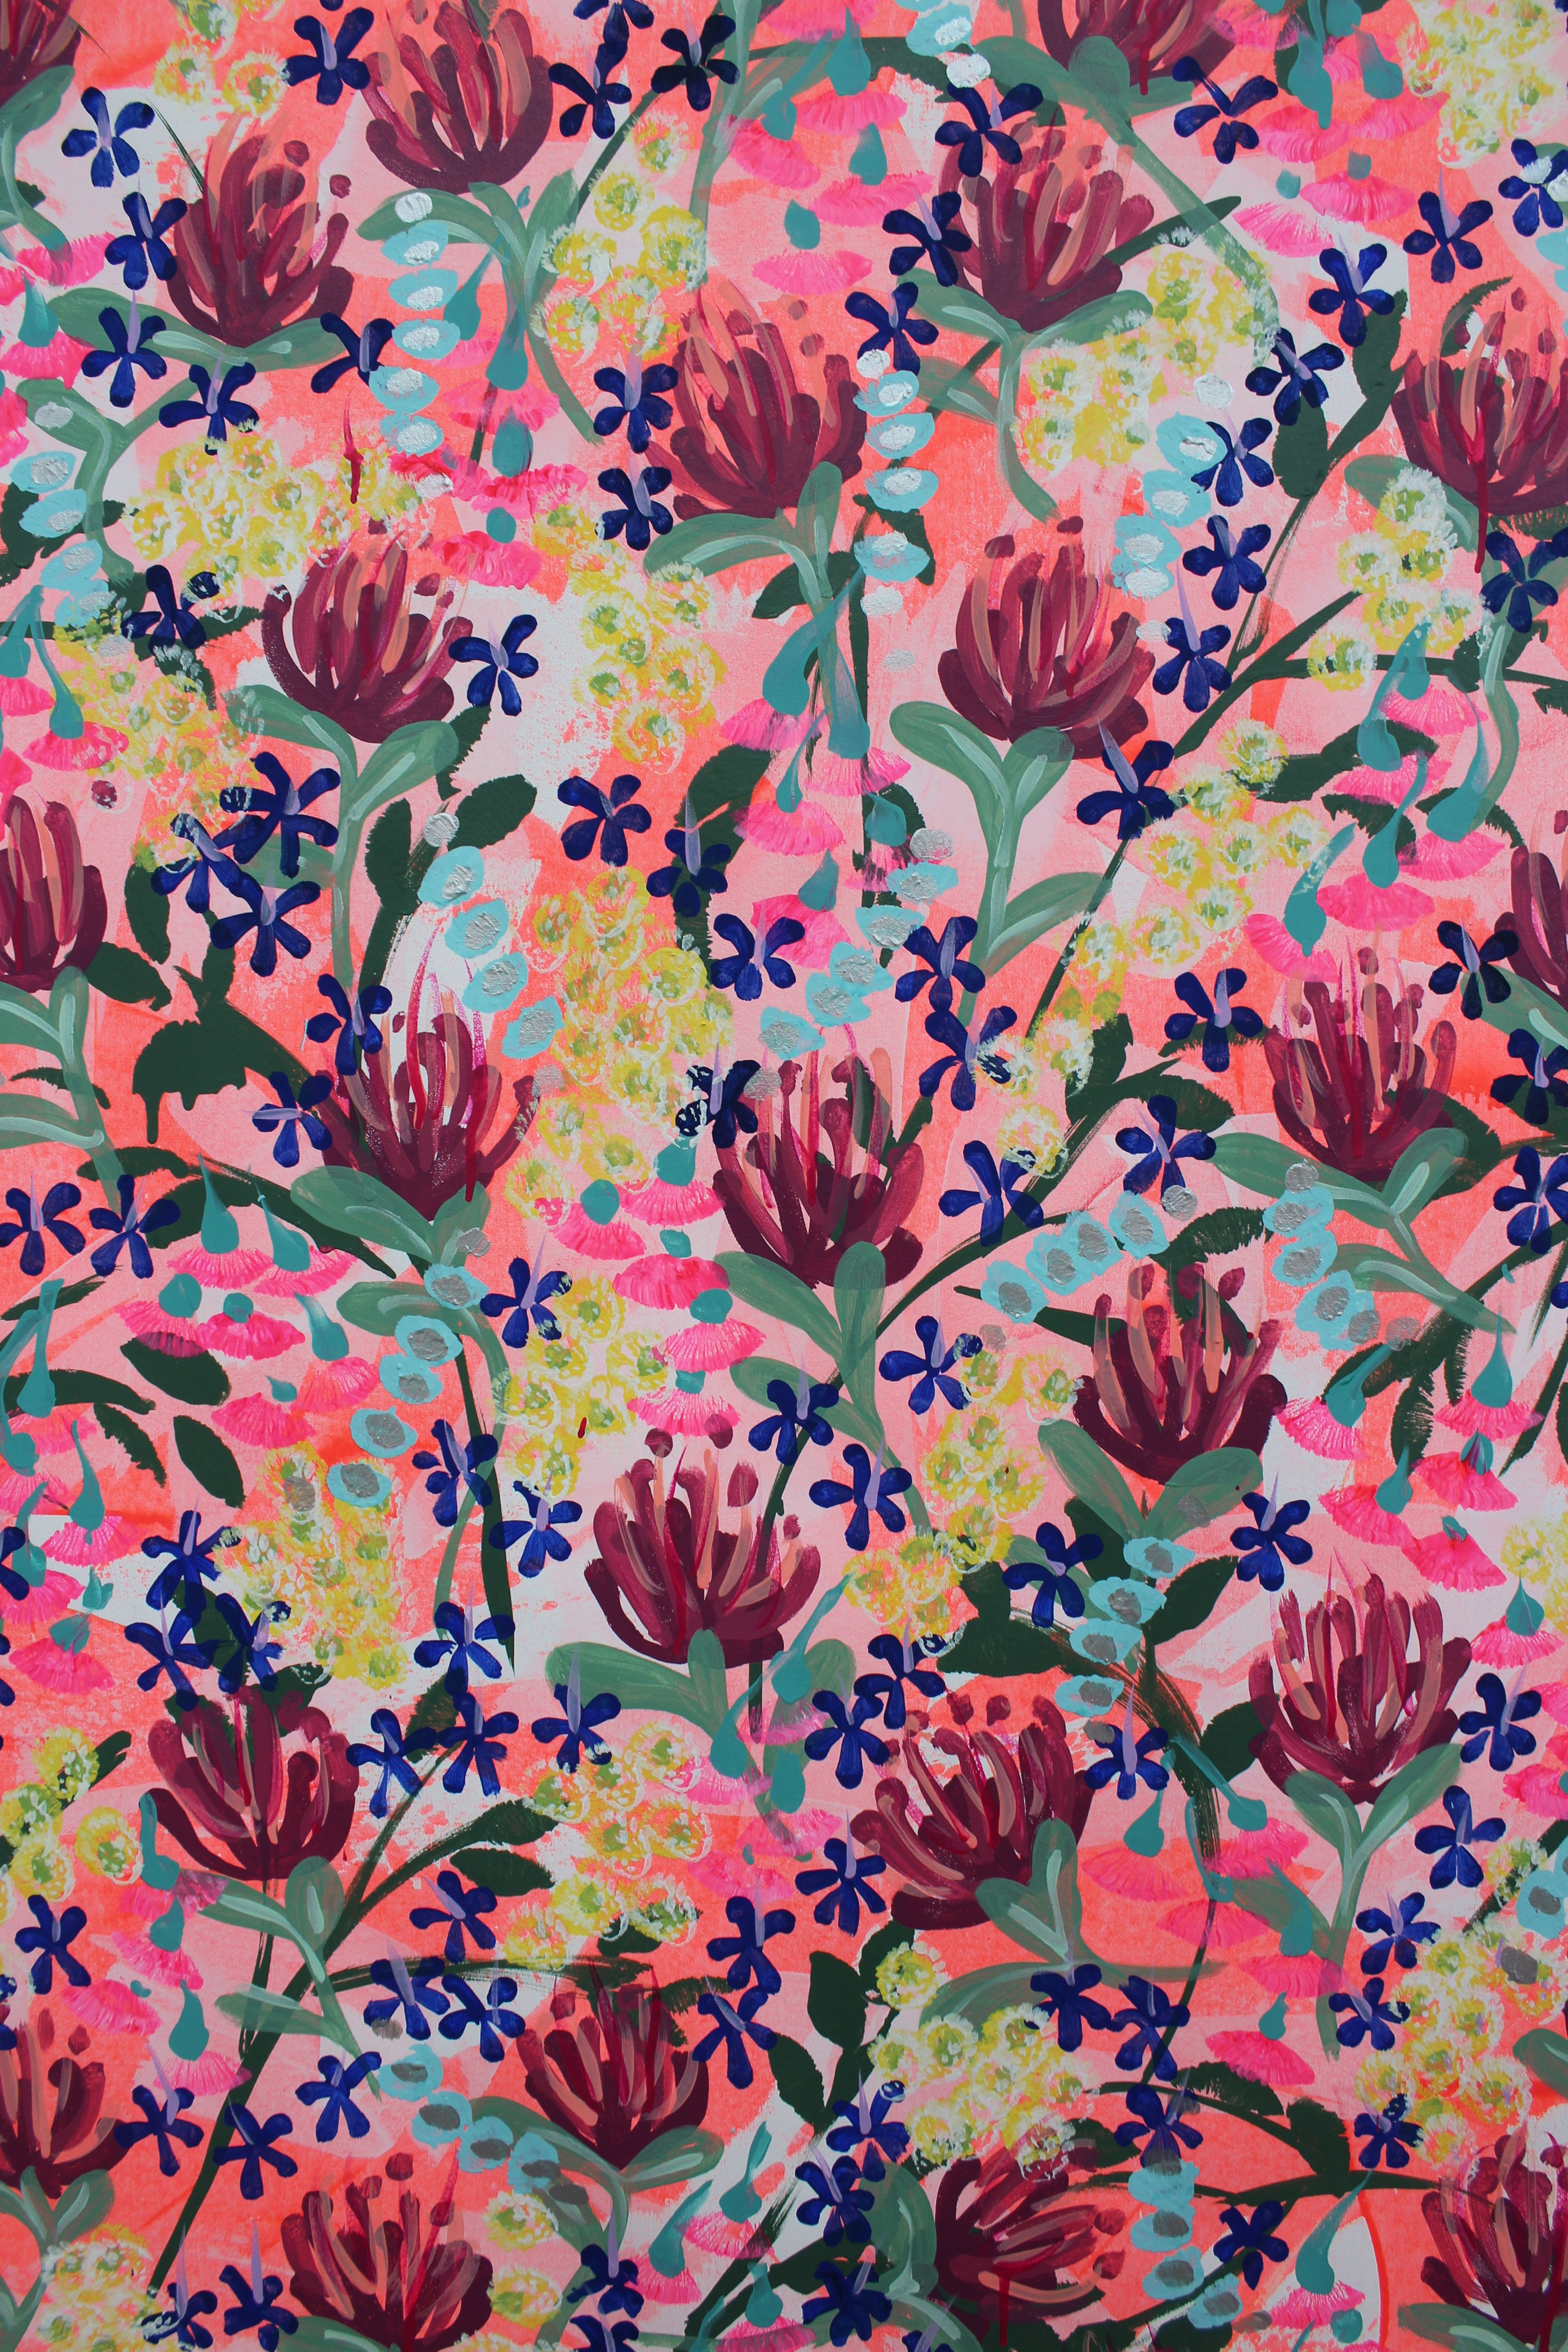 A BEAUTIFUL ABSTRACT FLORAL IN GORGEOUS PINKS, BLU